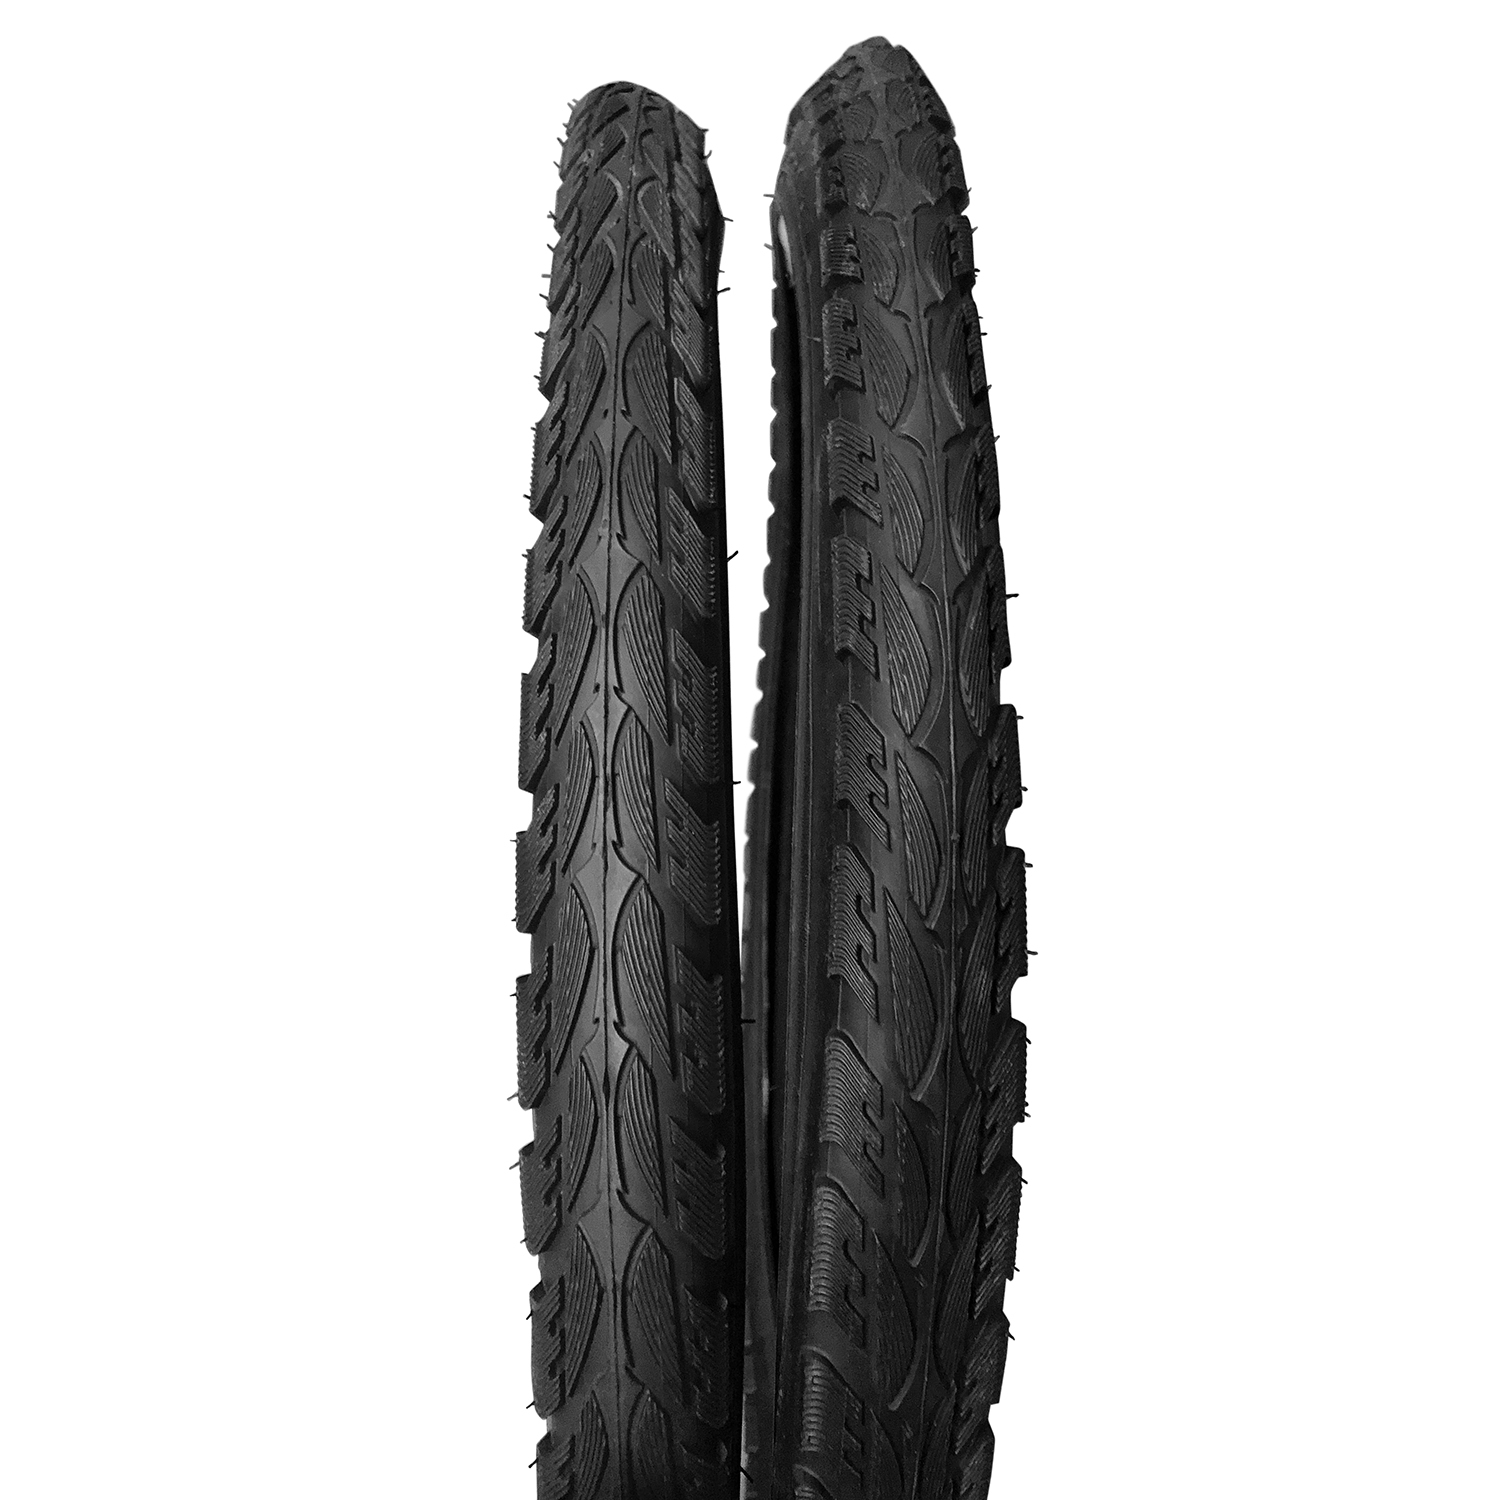 Factor MTB Tyres Centre Knobby Dual Purpose Tread – 26 x 1.75 (2 Pack) [TY550-PK2]